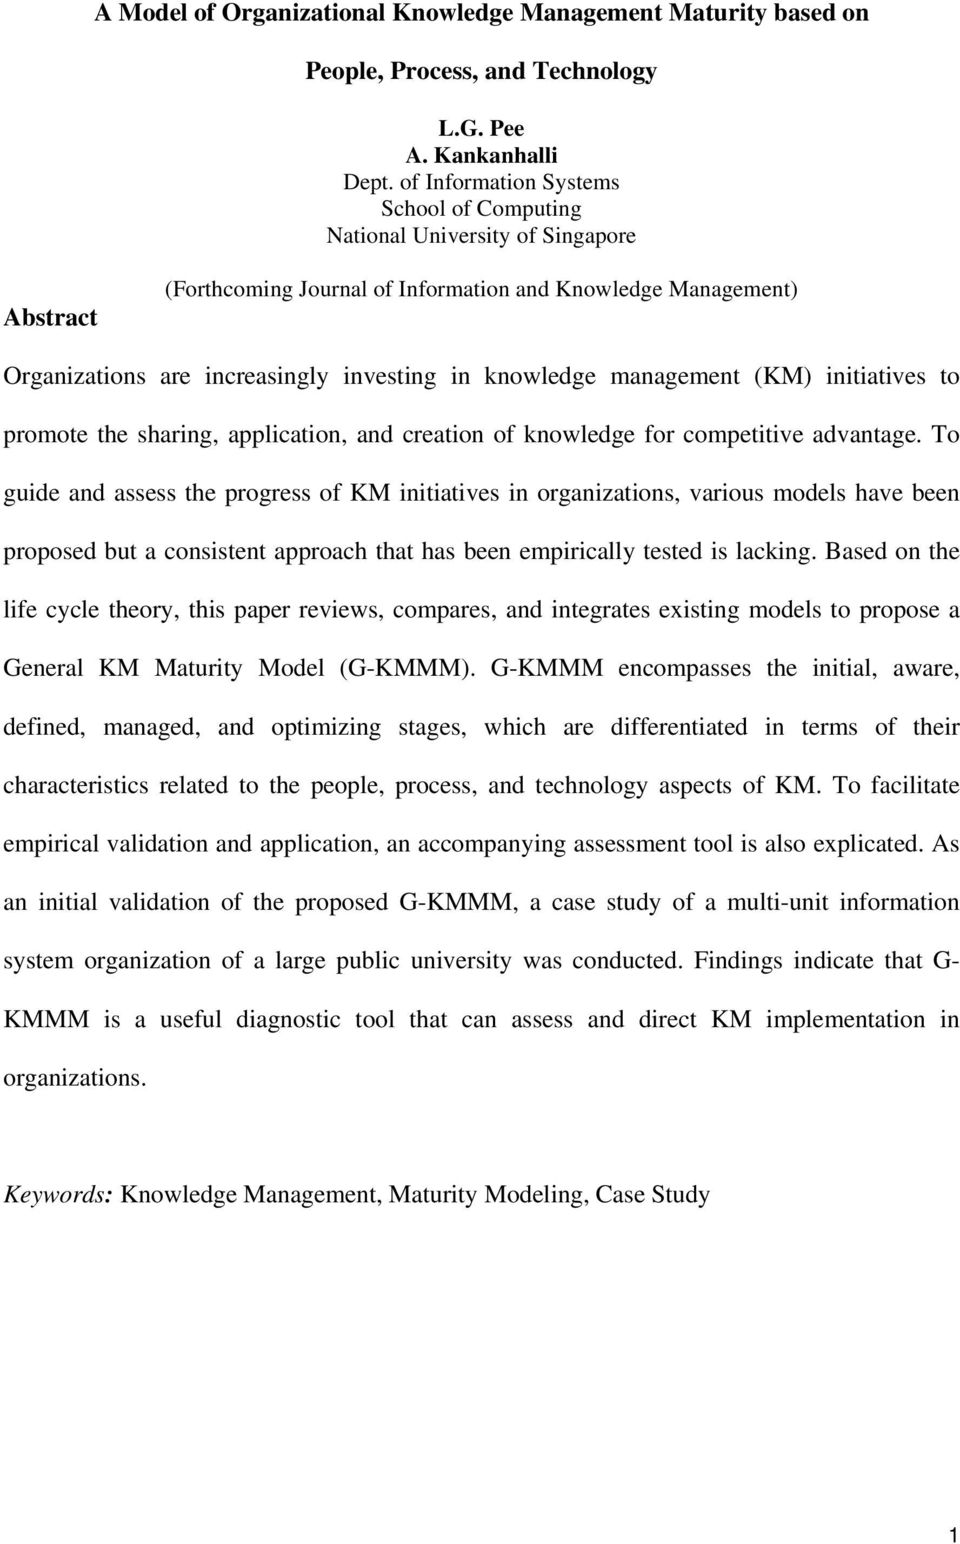 knowledge management (KM) initiatives to promote the sharing, application, and creation of knowledge for competitive advantage.